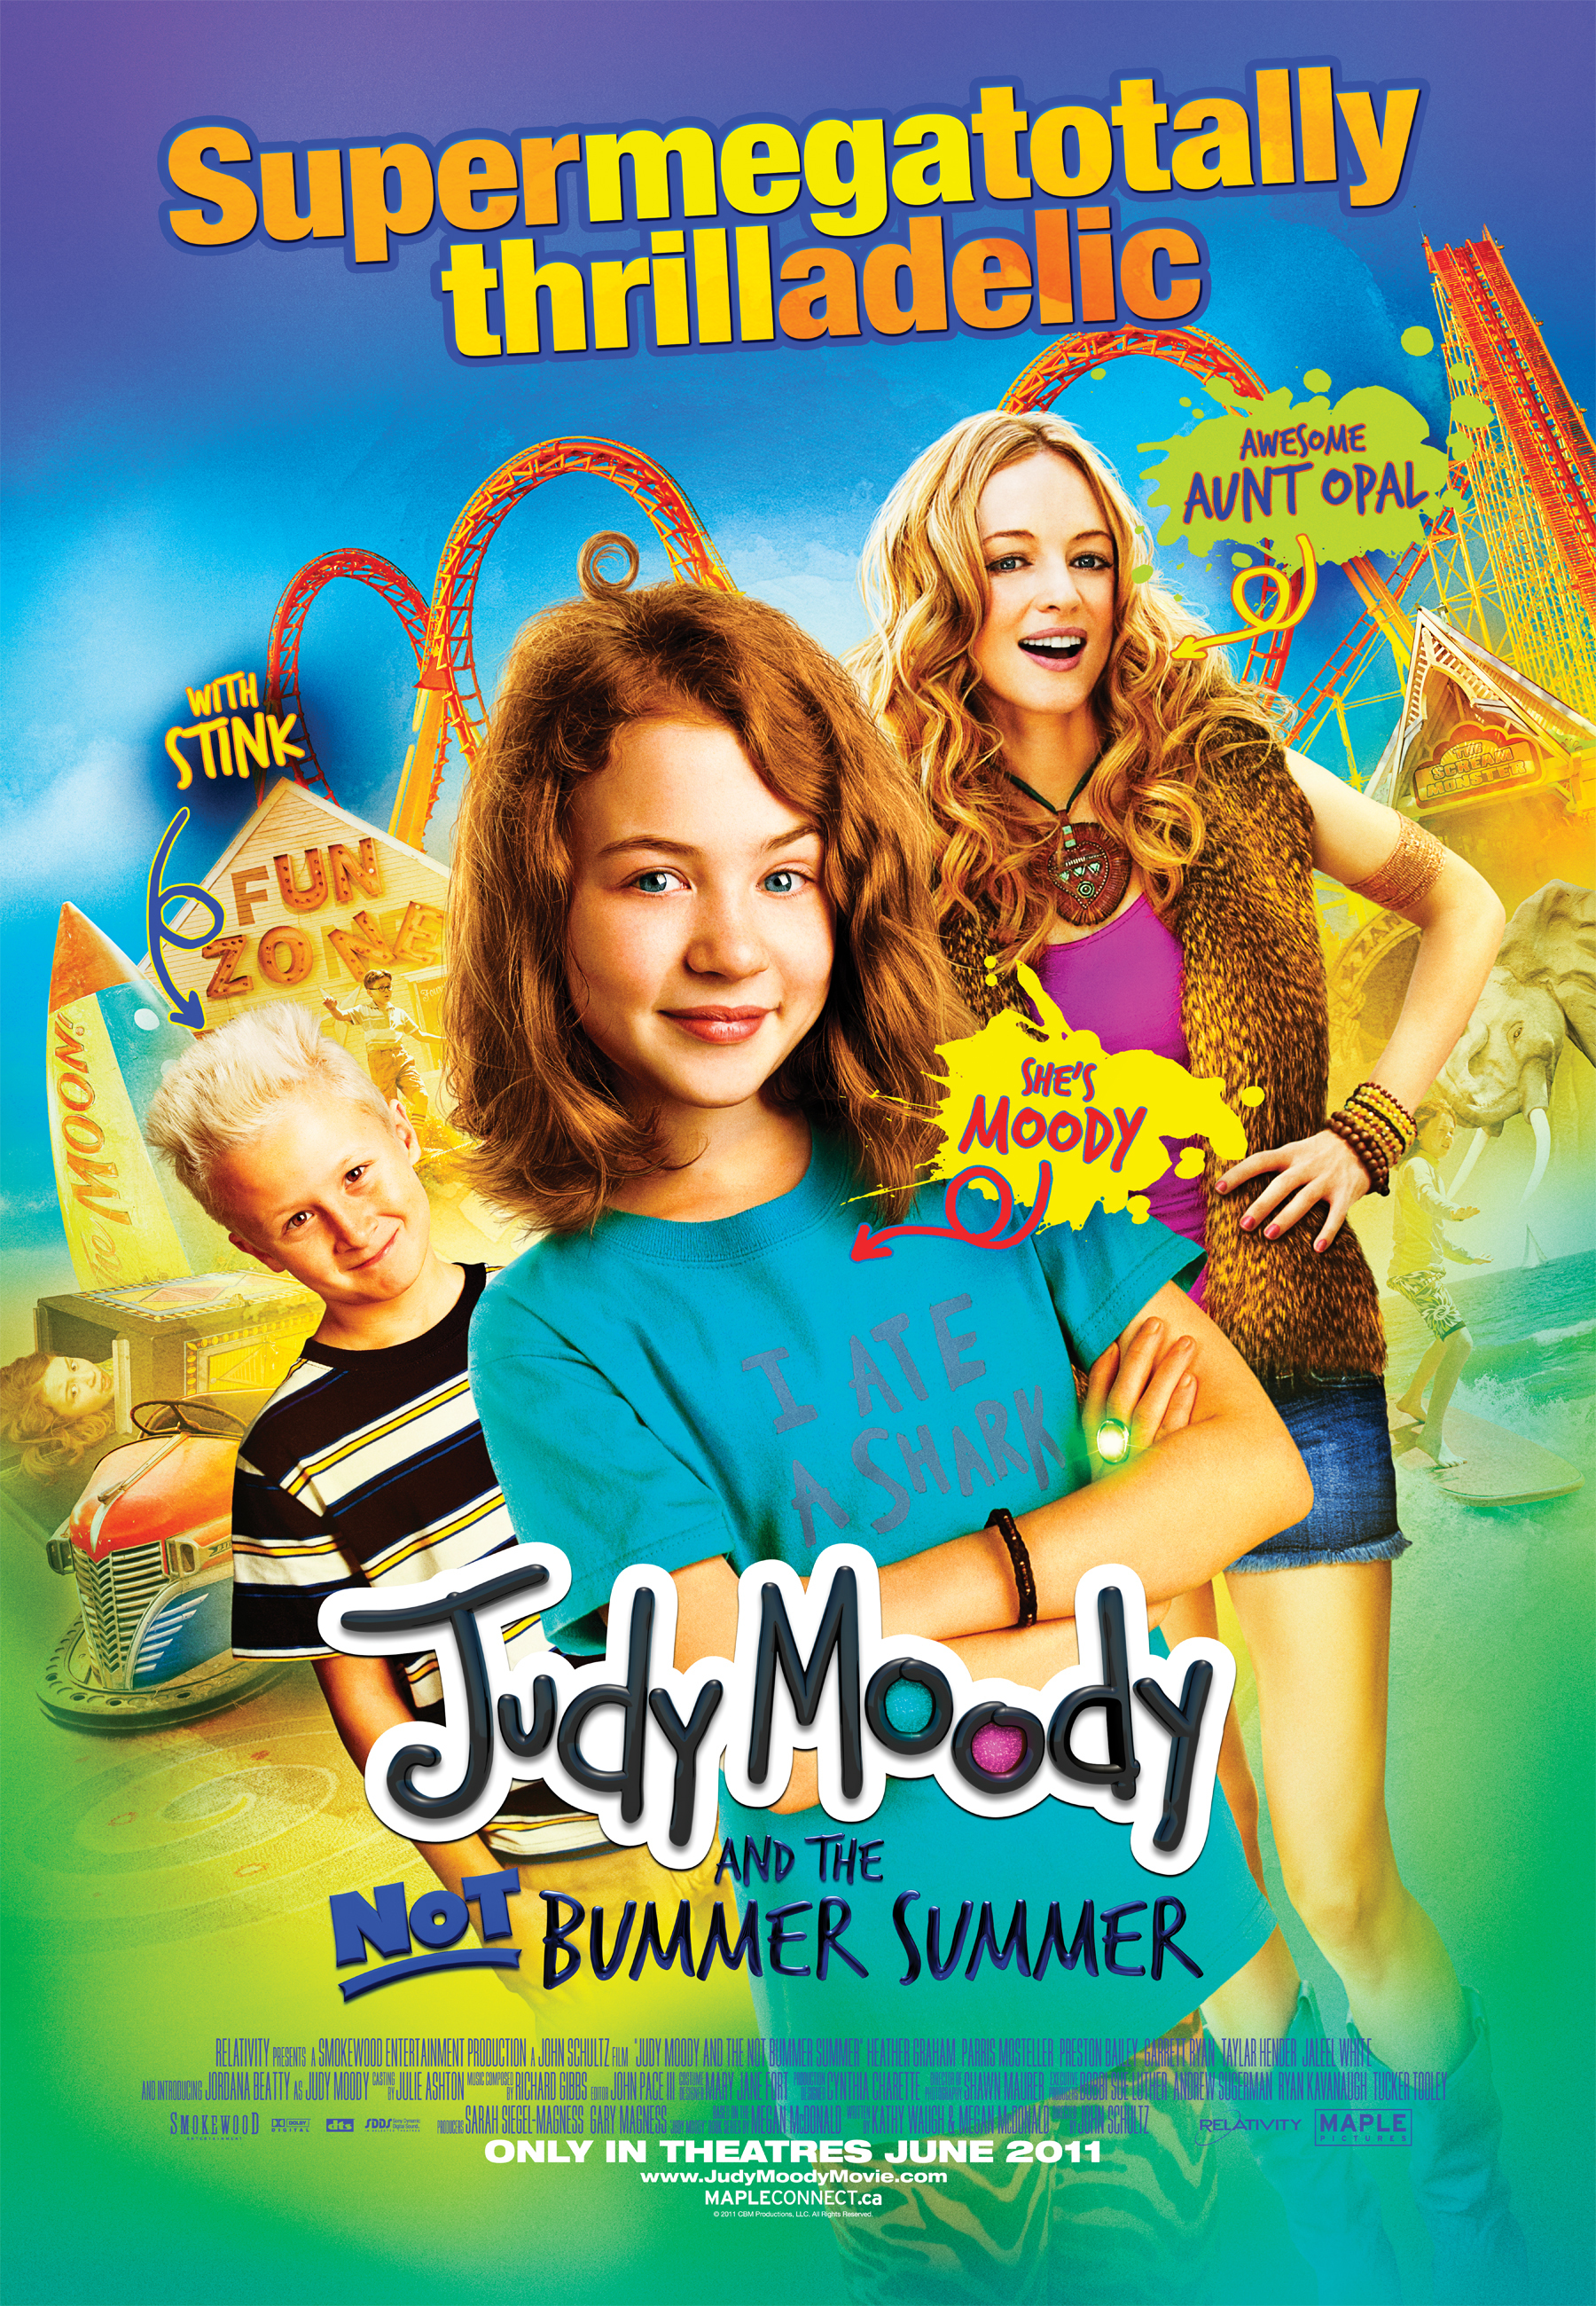 affiche du film Judy Moody and the Not Bummer Summer